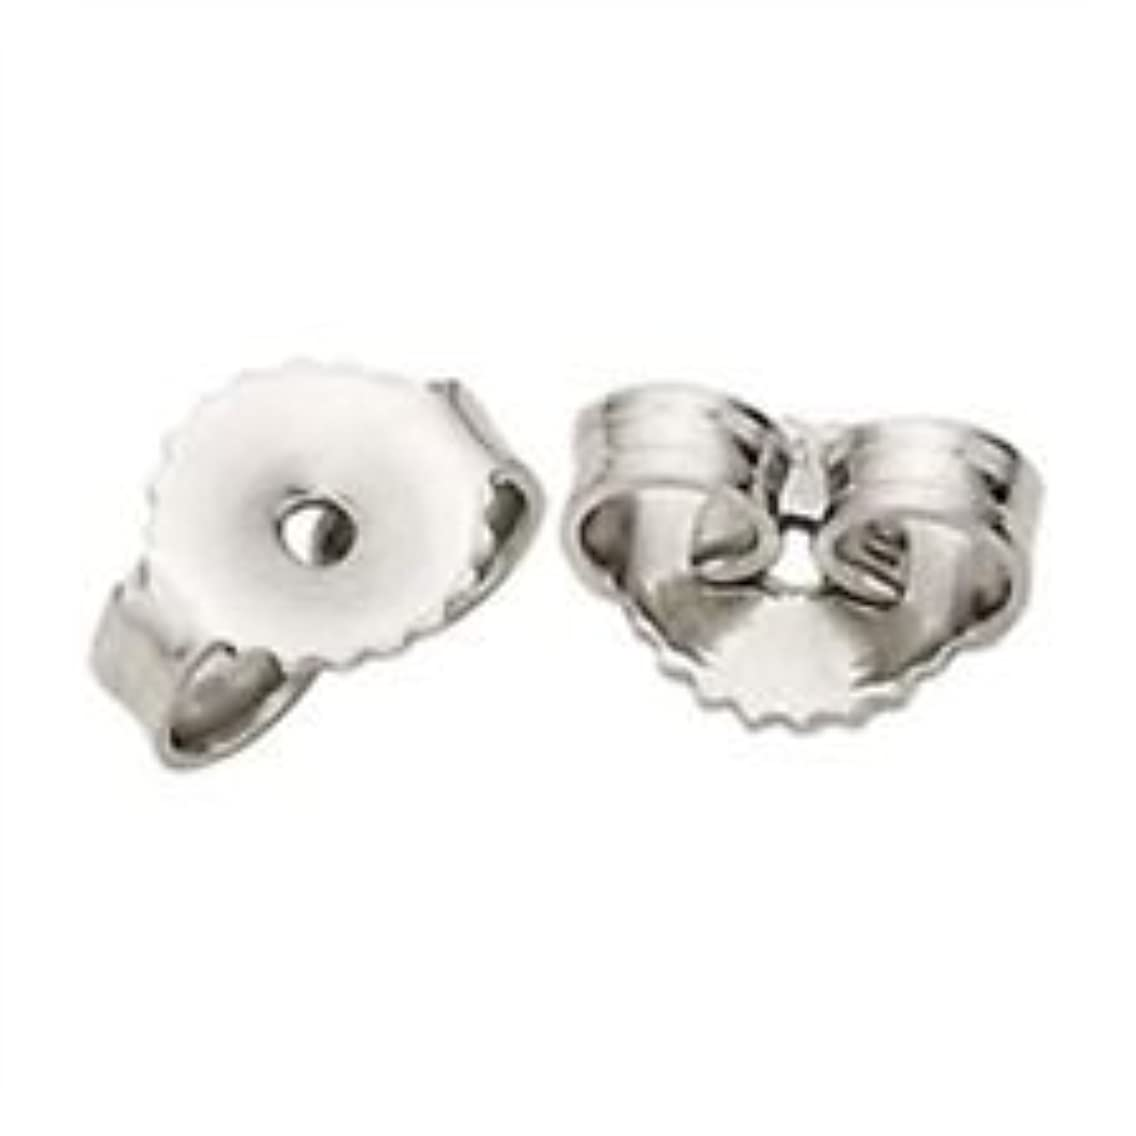 PARIKHS Pair of Friction Earring Backs(ExtraHeavy Earnuts)Replacement back-findings-14k White Gold